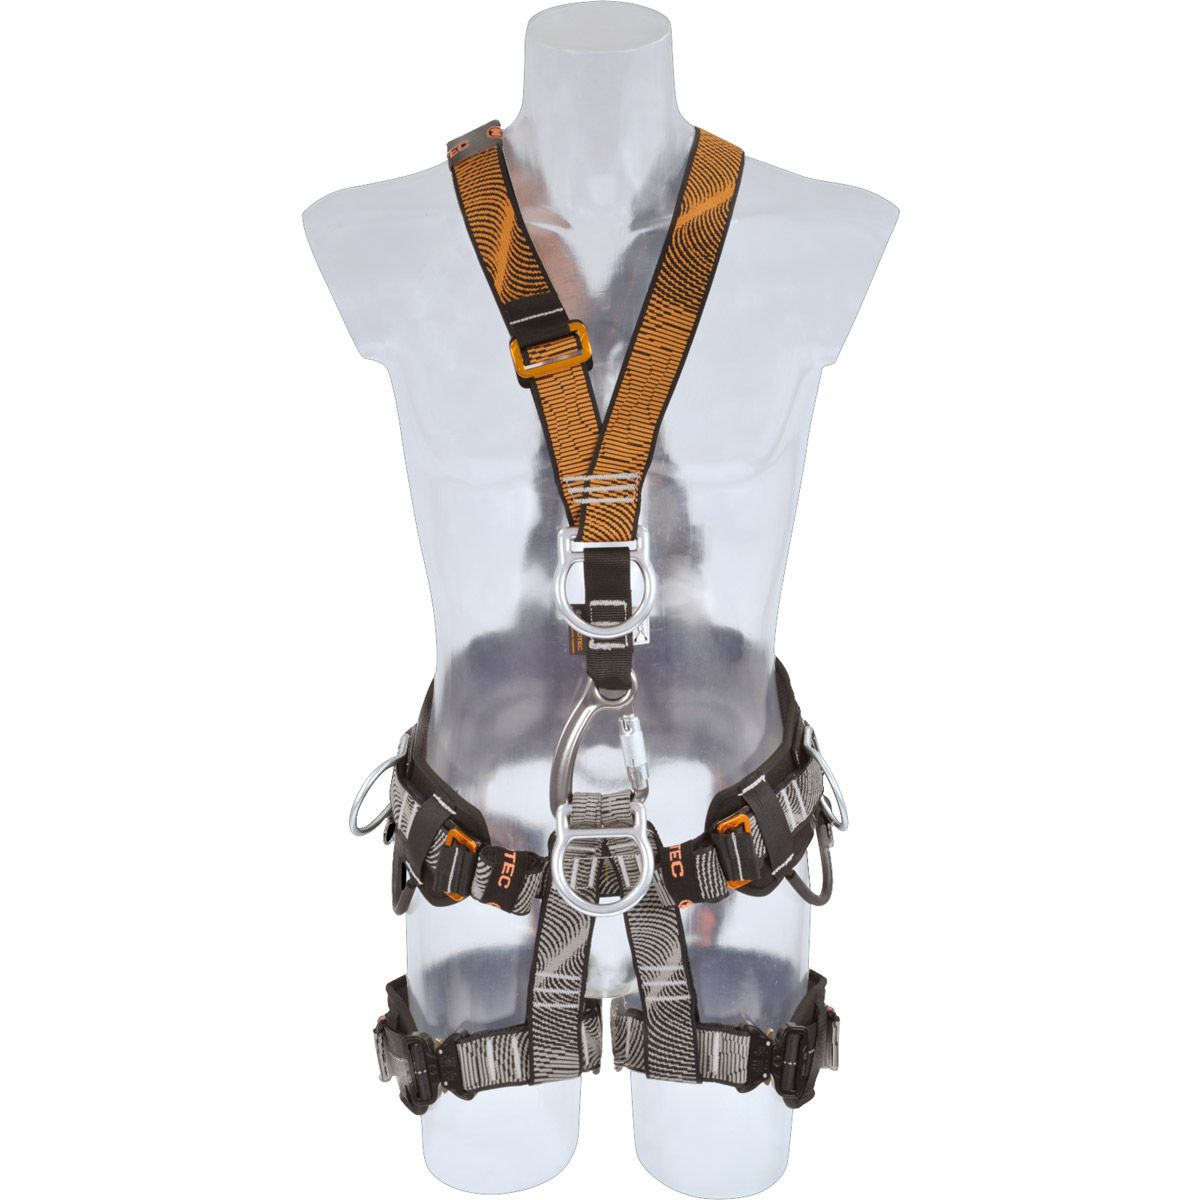 Skylotec ARG 80 Tower & Rigger  Harness